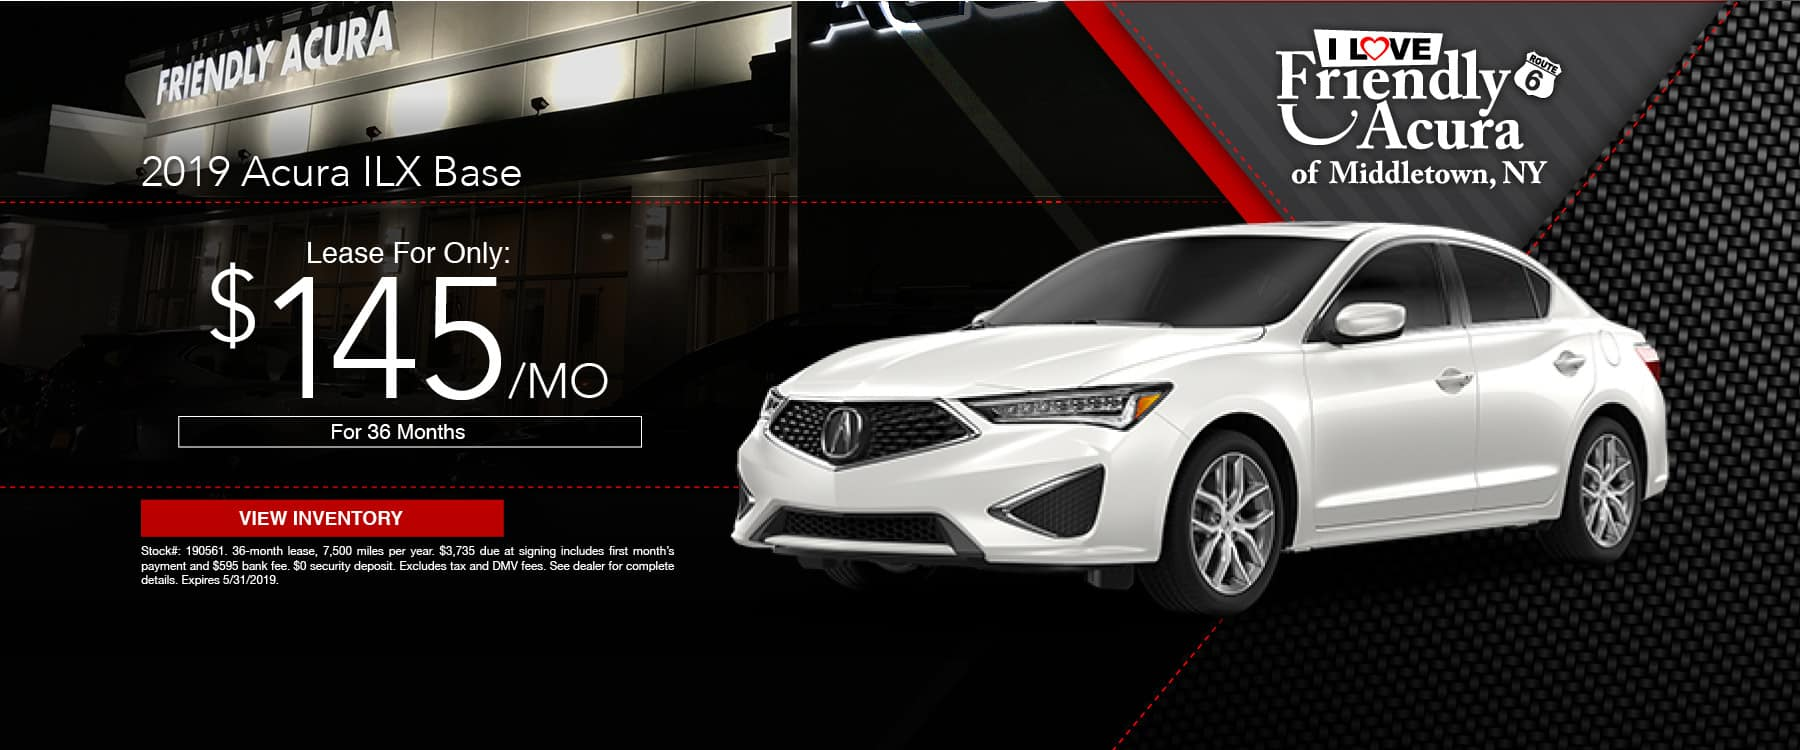 Drive a Friendly Acura ILX for just $145 a month!